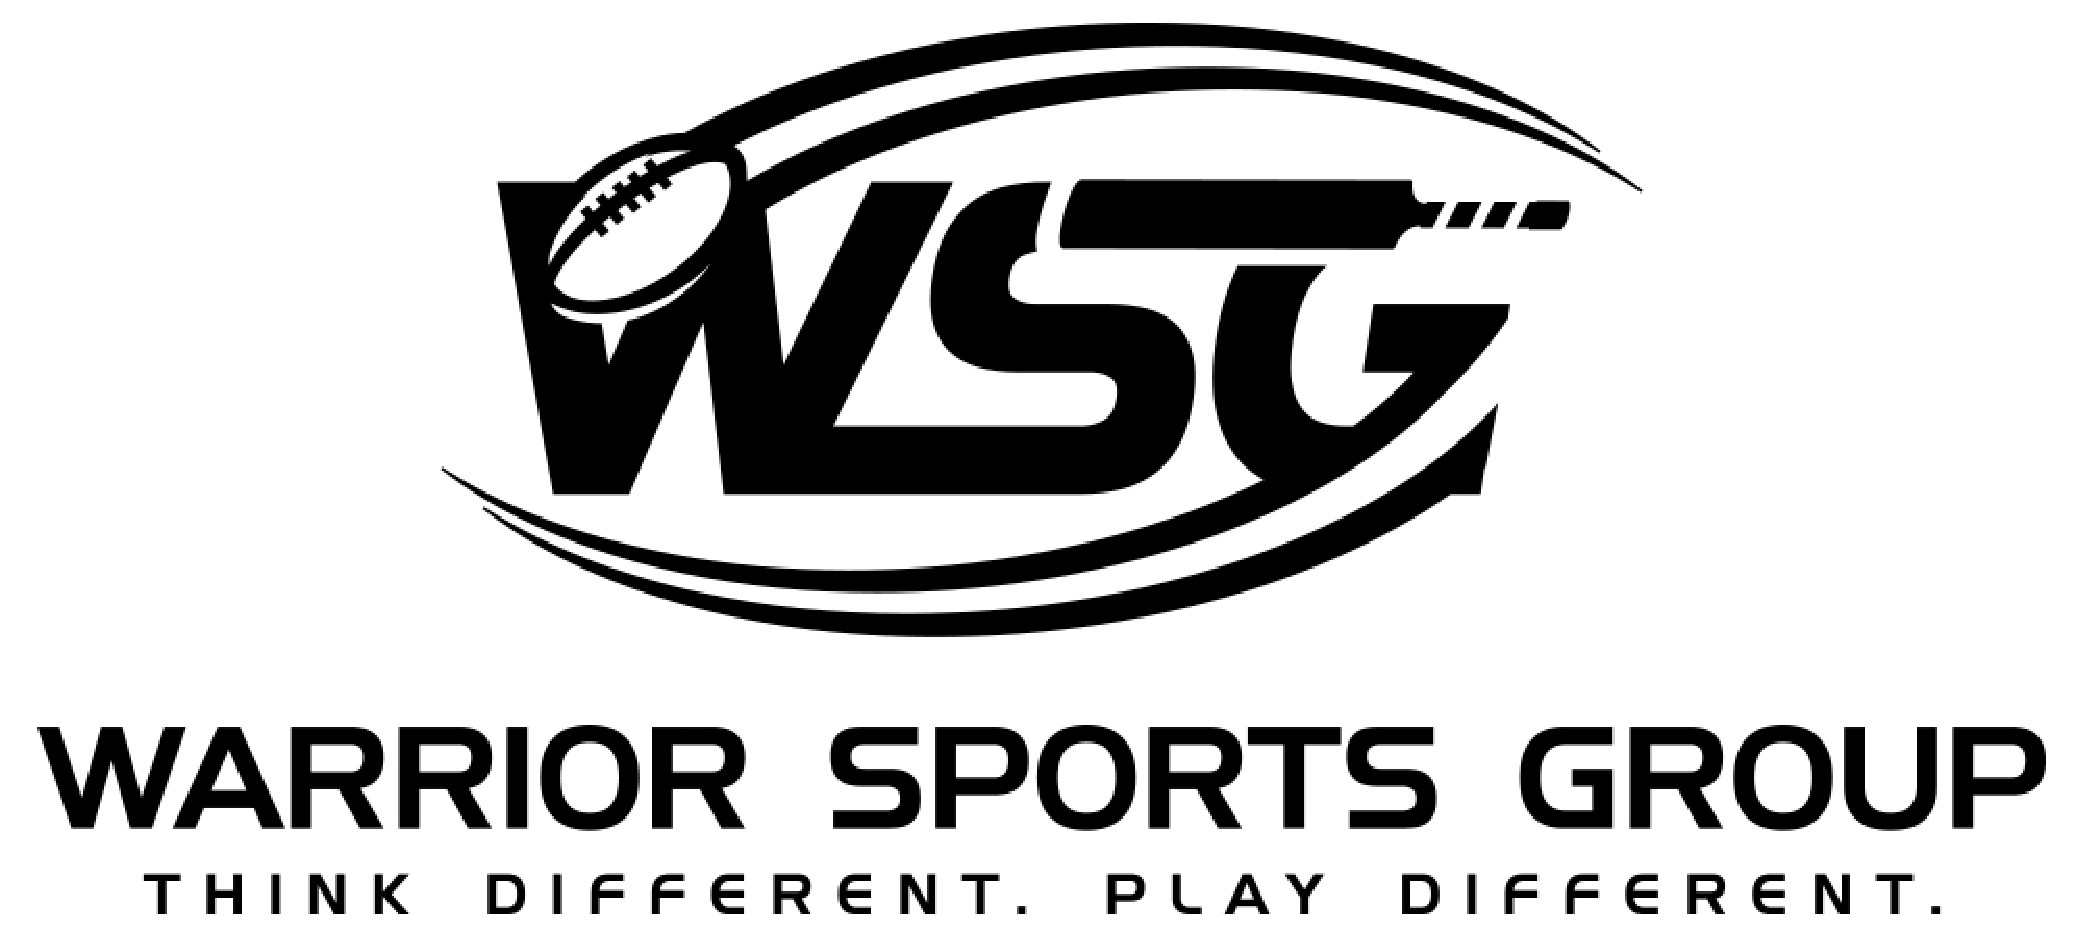 Design logo for a sports equipment business who want to think different and play different